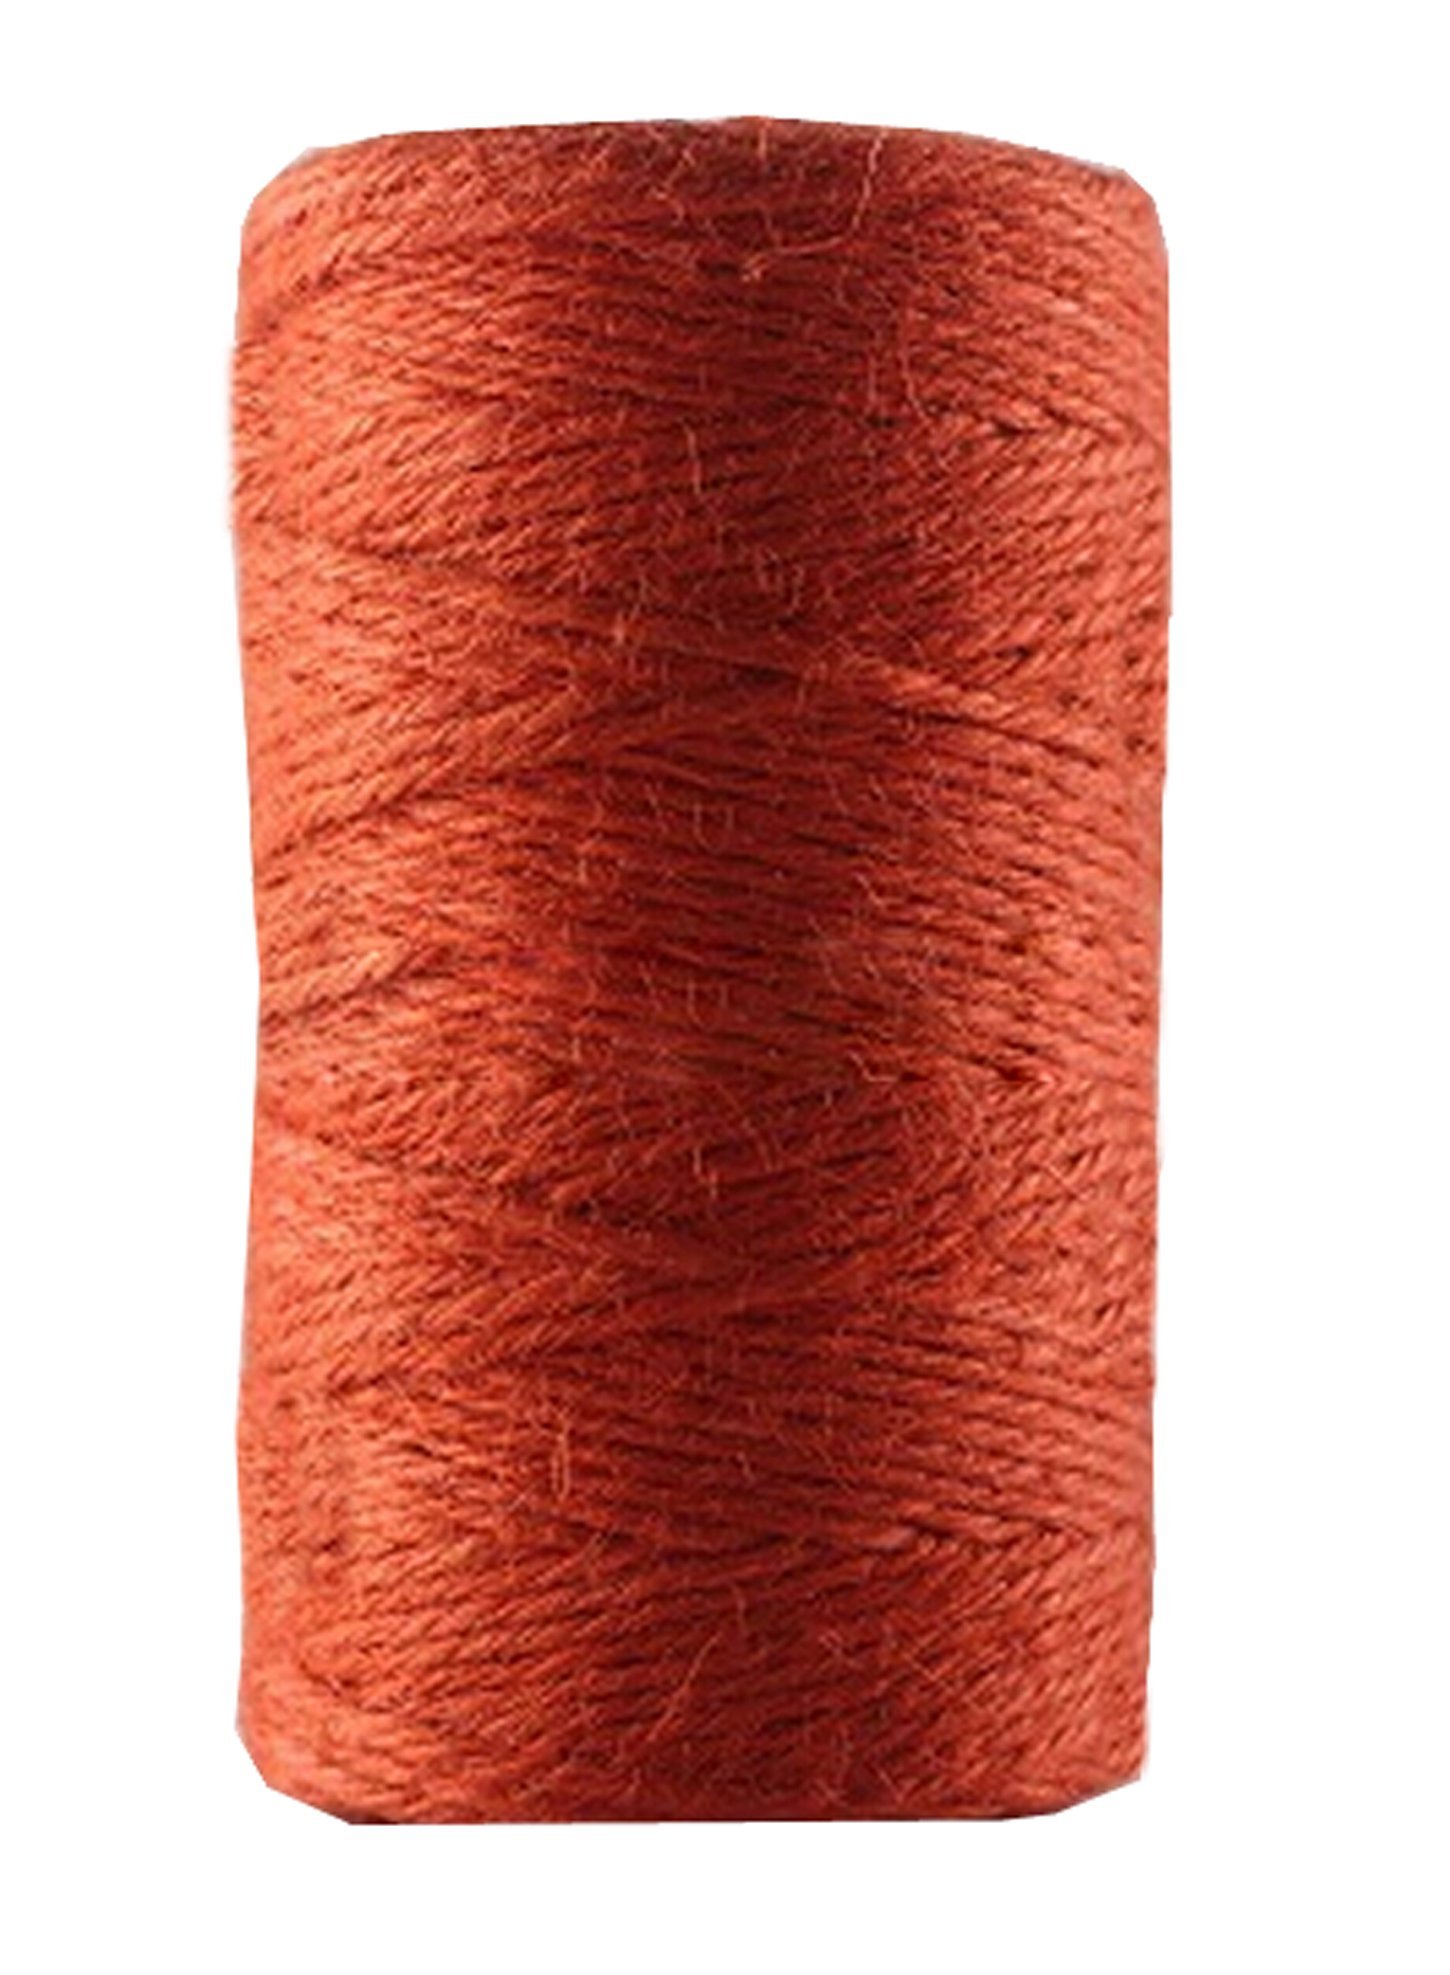 Huachnet Orange Jute Twine Best Arts Crafts Twine Industrial Packing Materials Heavy Duty Durable Natural Twine 4 Strands for Gardening Applications-2mm(W)*100 Meters(L) by Huachnet